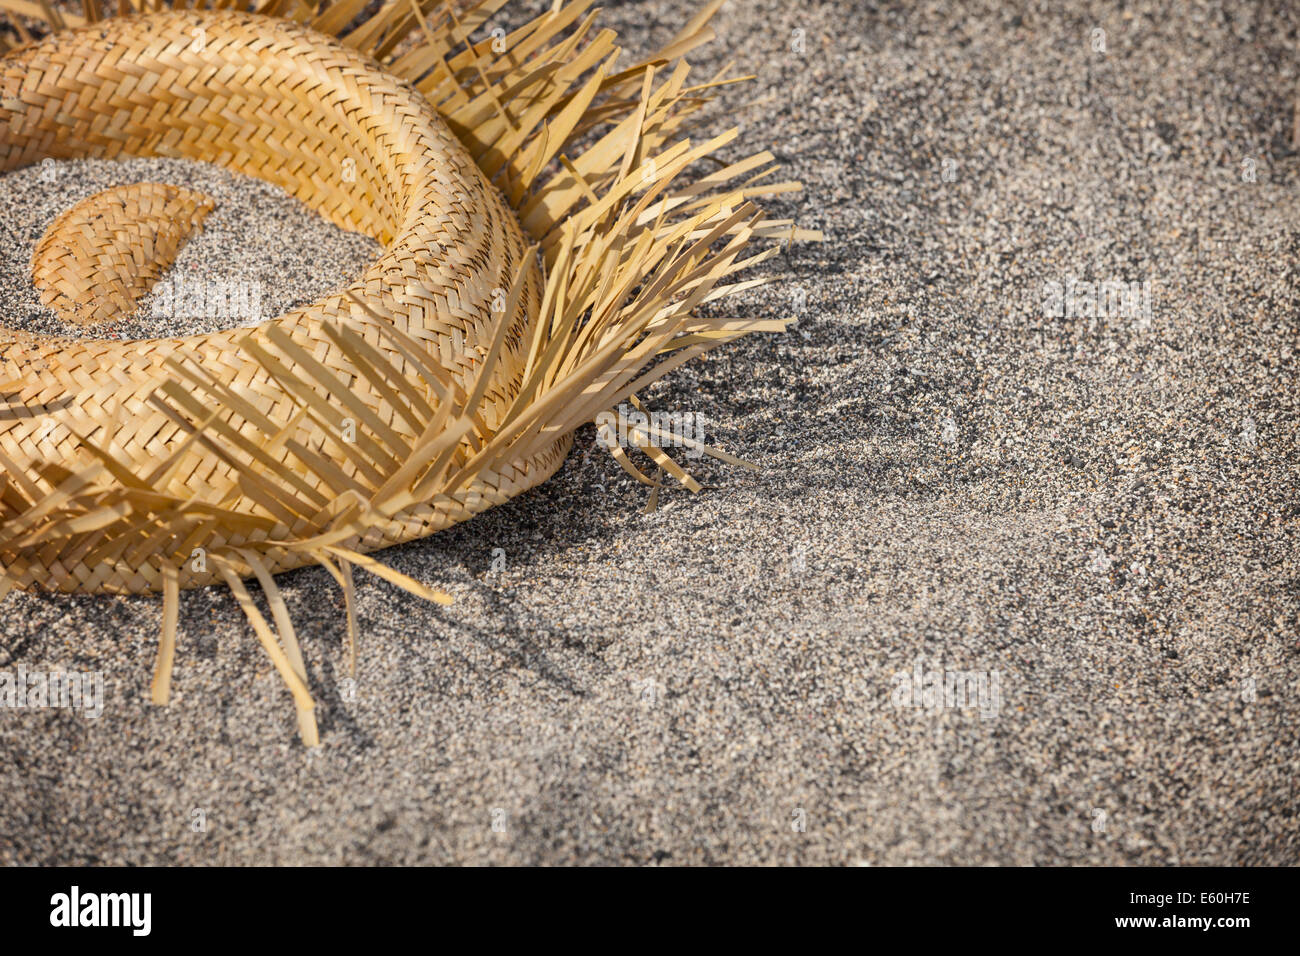 Tourists went home. Hat lying on the beach - garbage - Stock Image